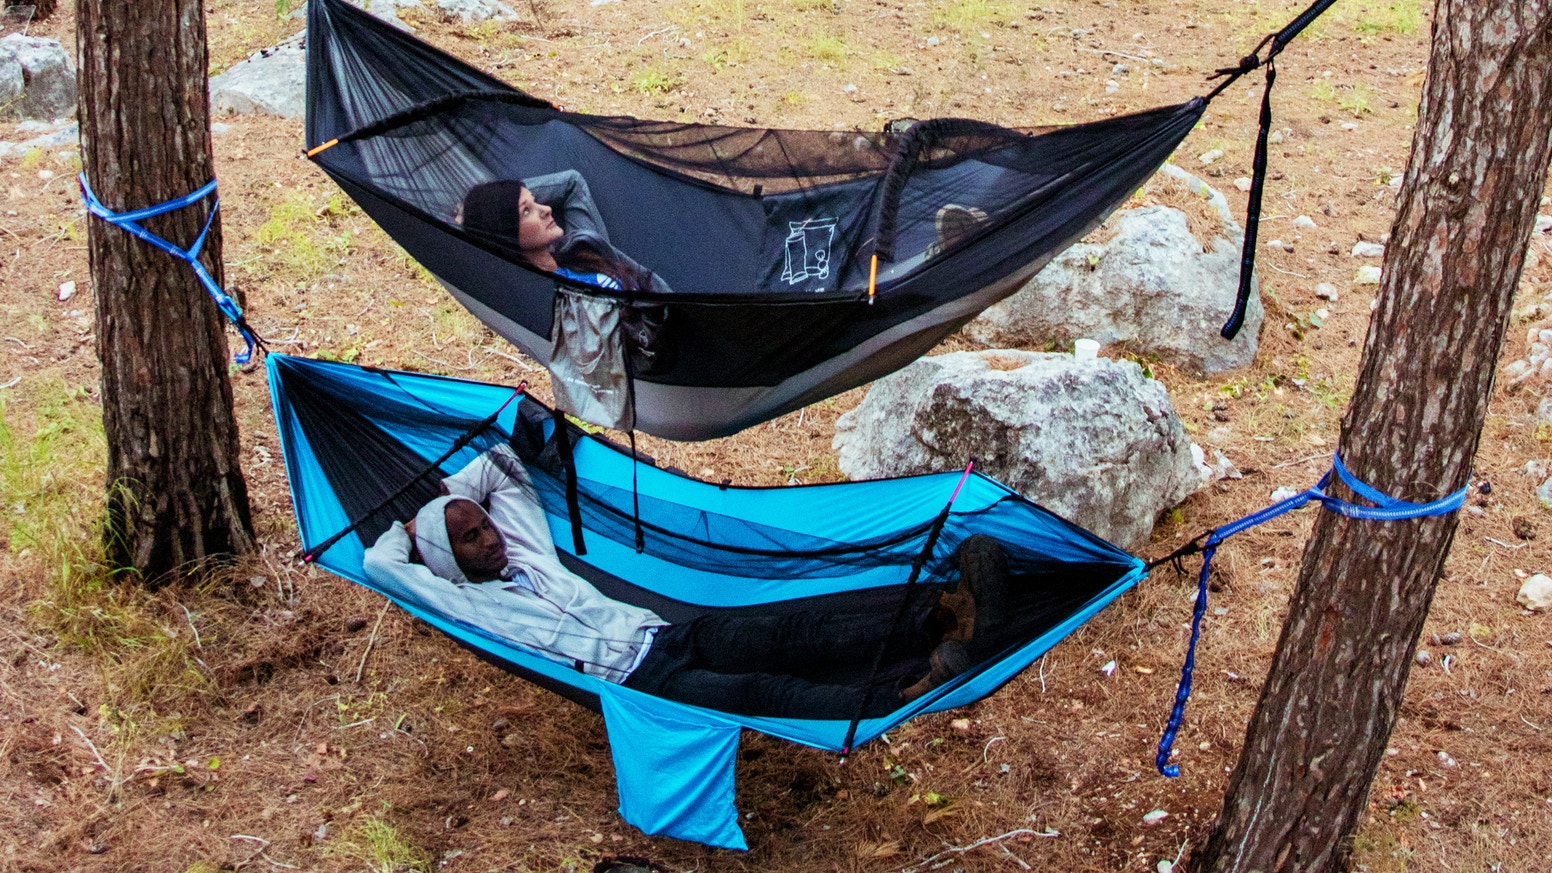 Koala is a light, super-designed hammock that we labored over like crazy so that you can relax to the max. By Crua Outdoors.